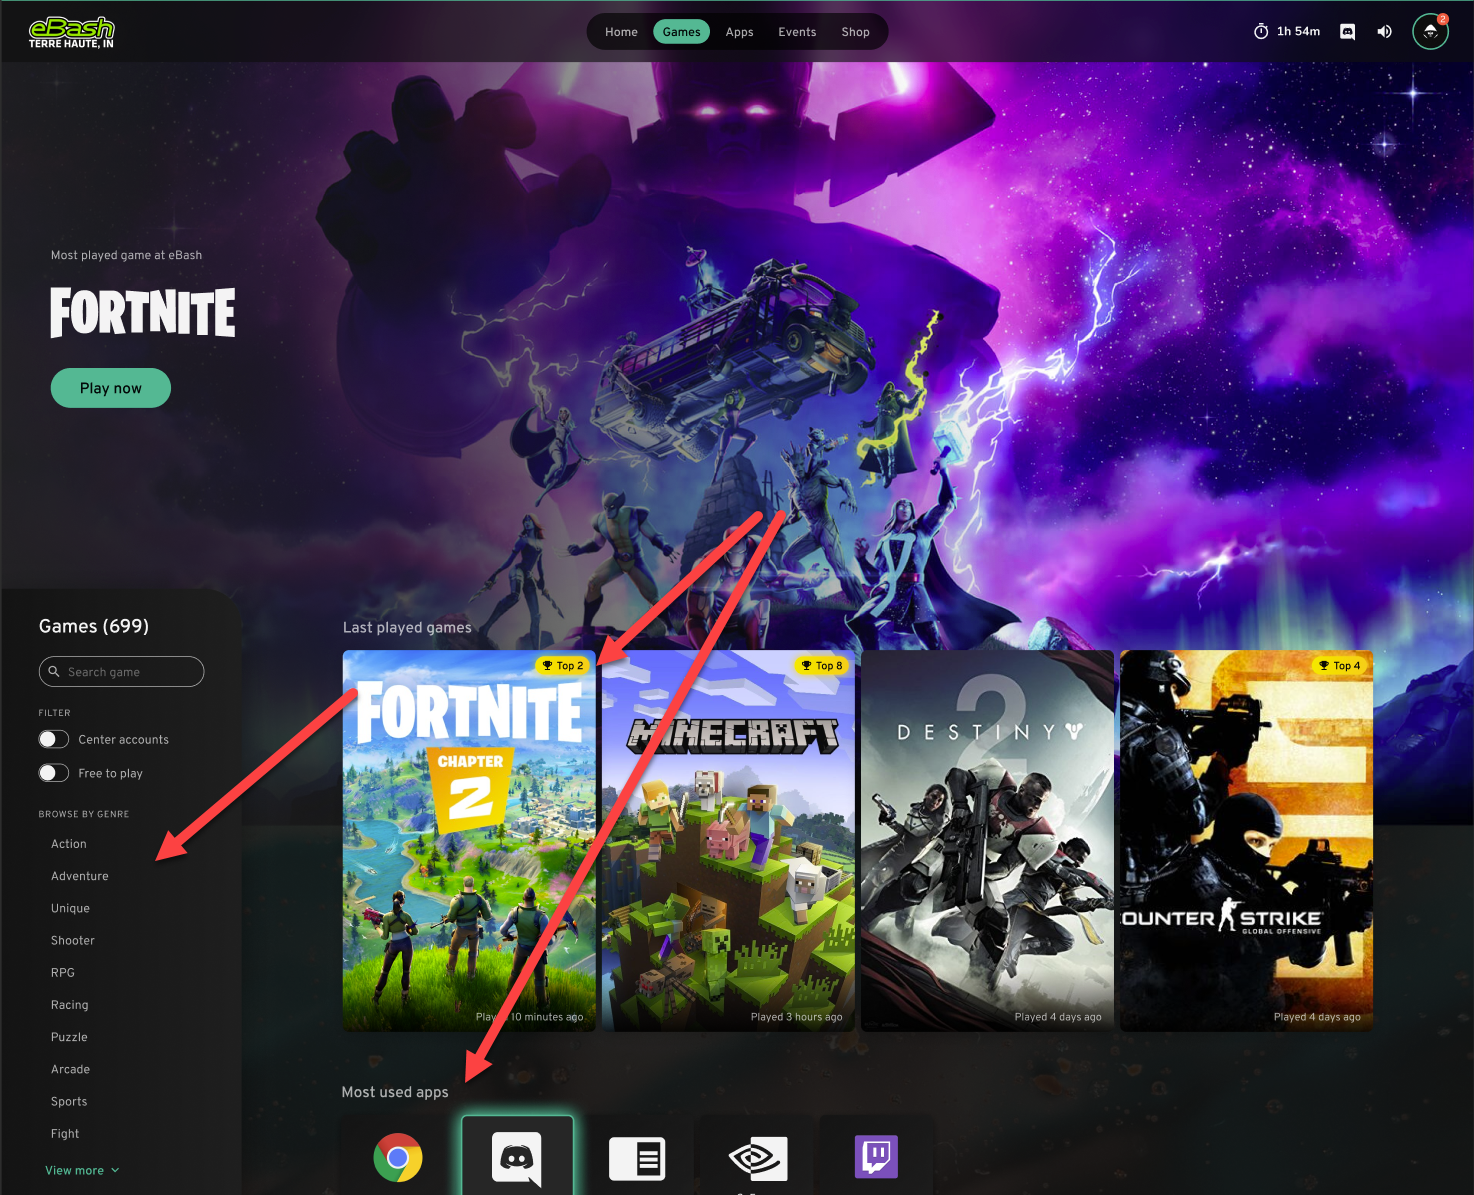 ggLeap's new games screen adds tags and filters for easier access to the games and apps